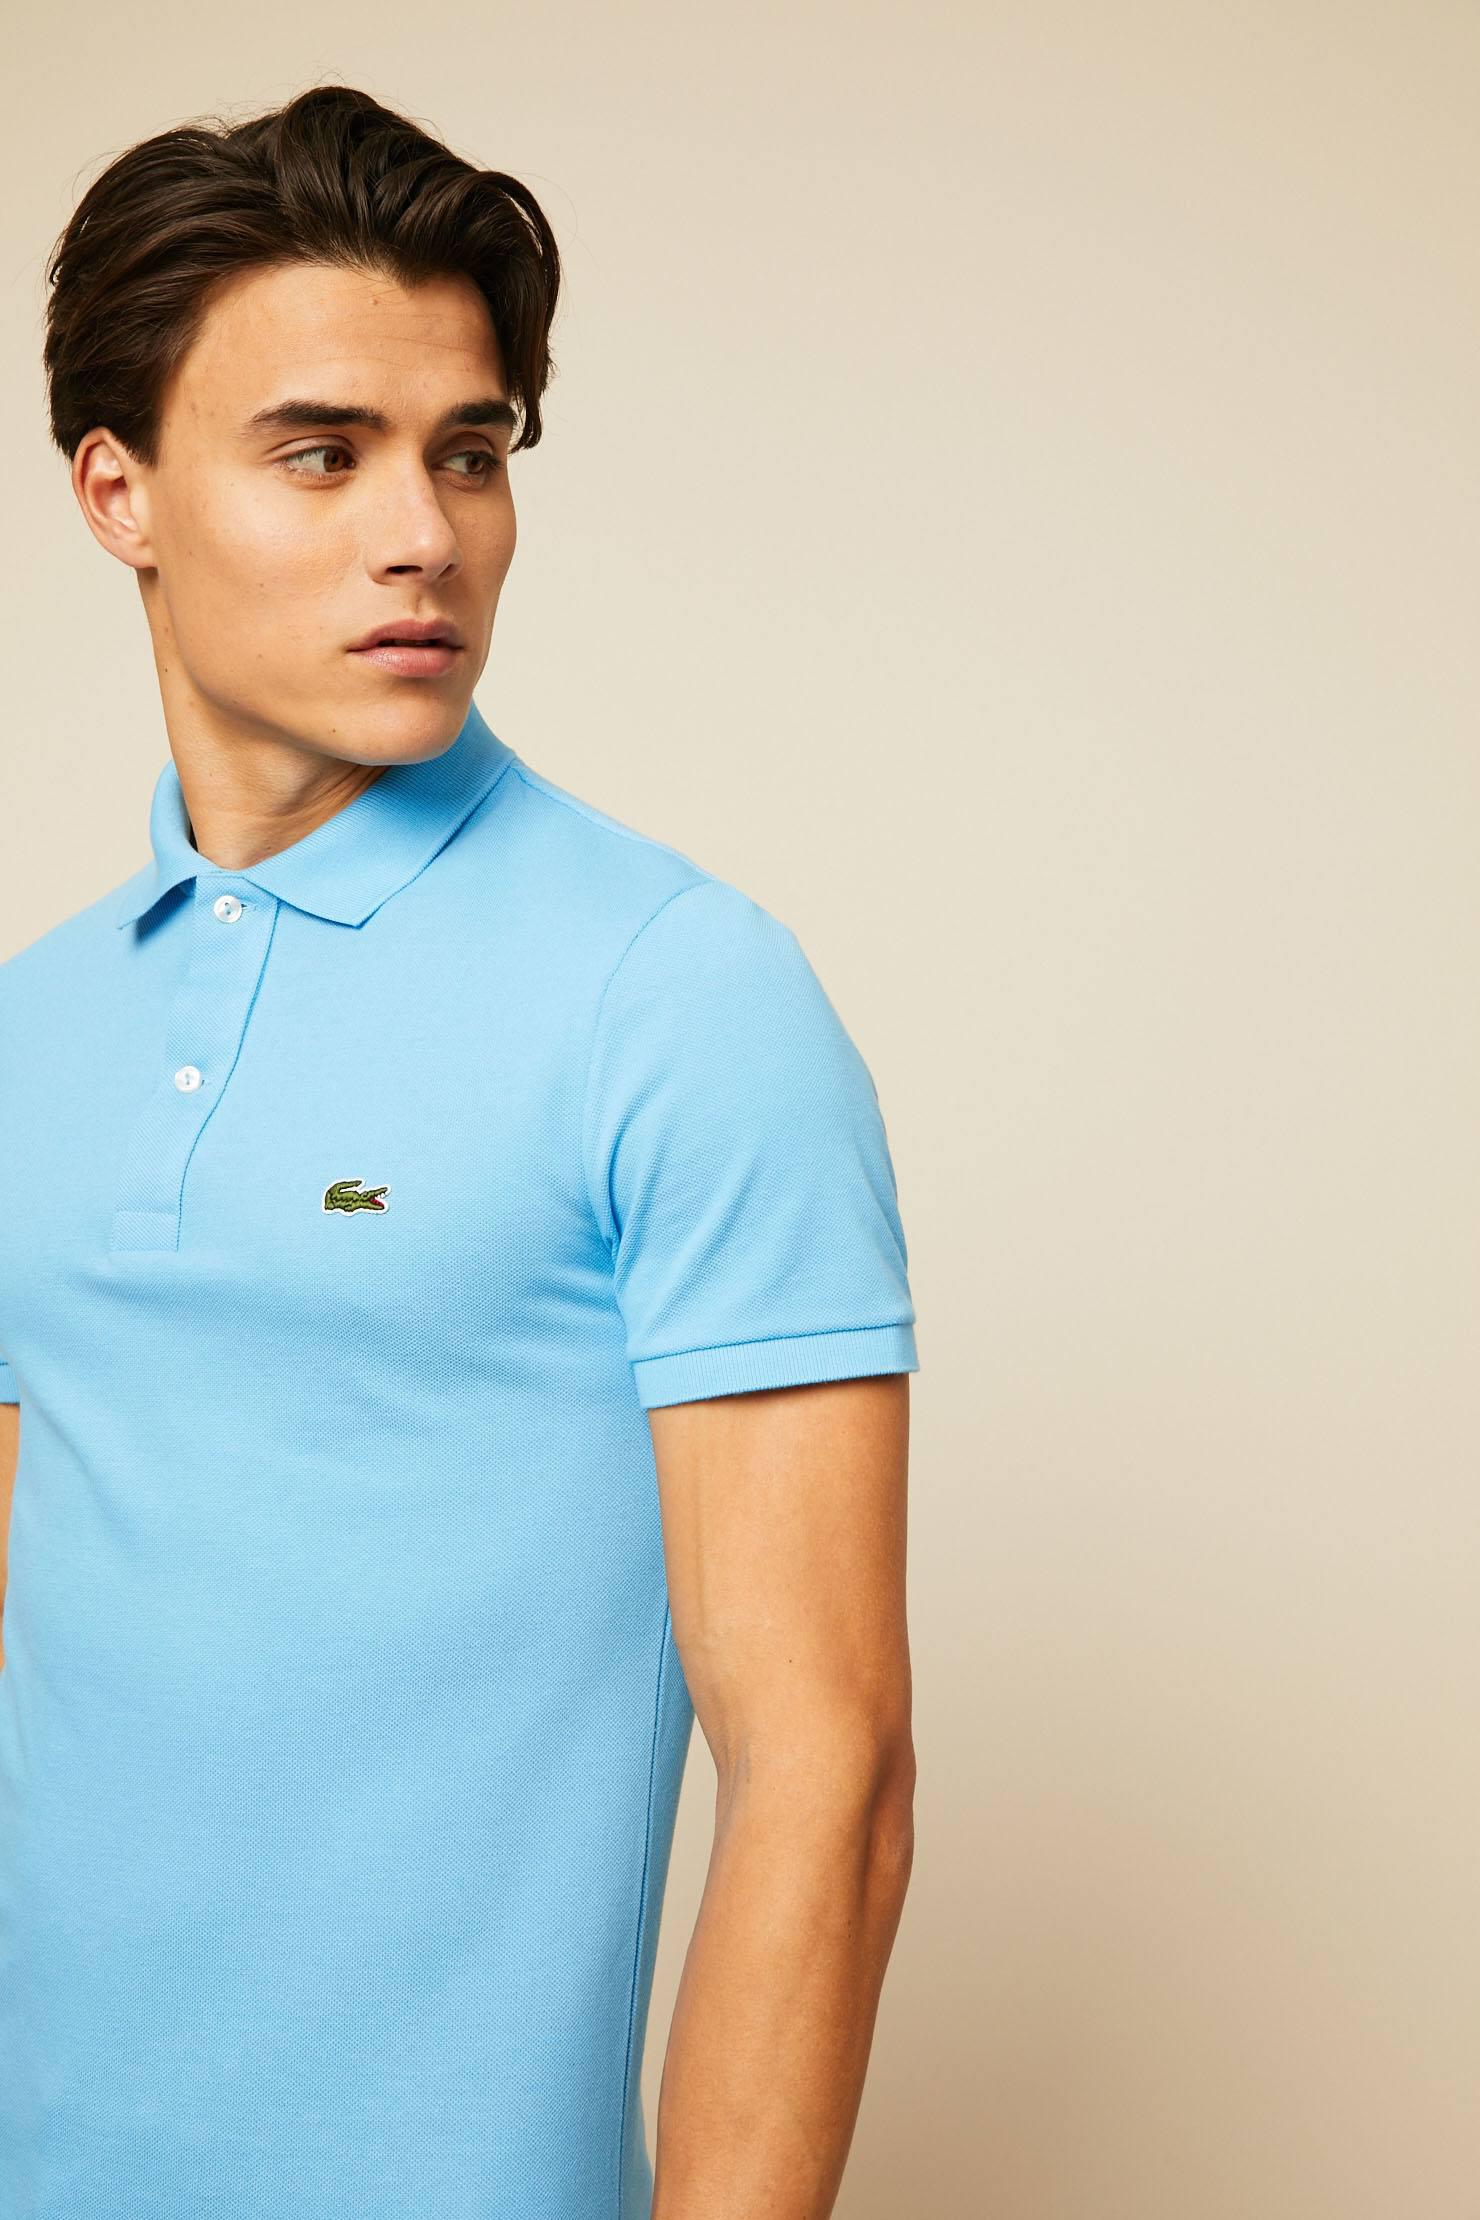 432764e054 Lacoste Polo Shirt For Sale Philippines - DREAMWORKS